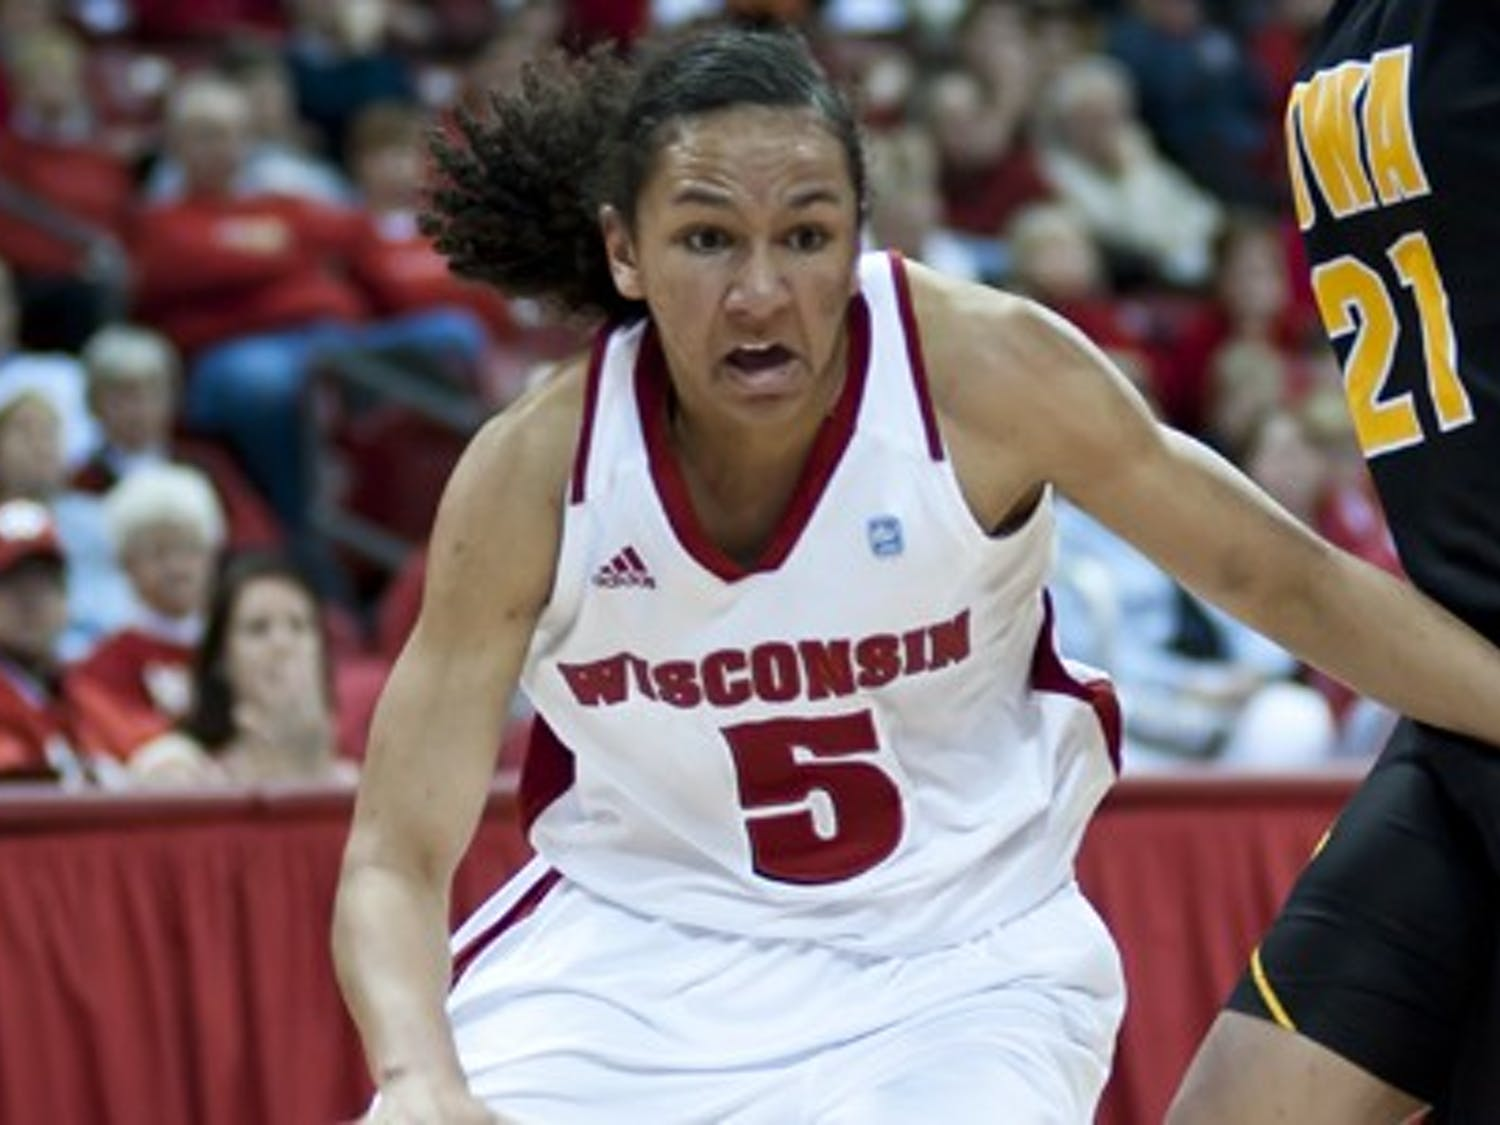 Morgan Paige, Badgers women's basketball